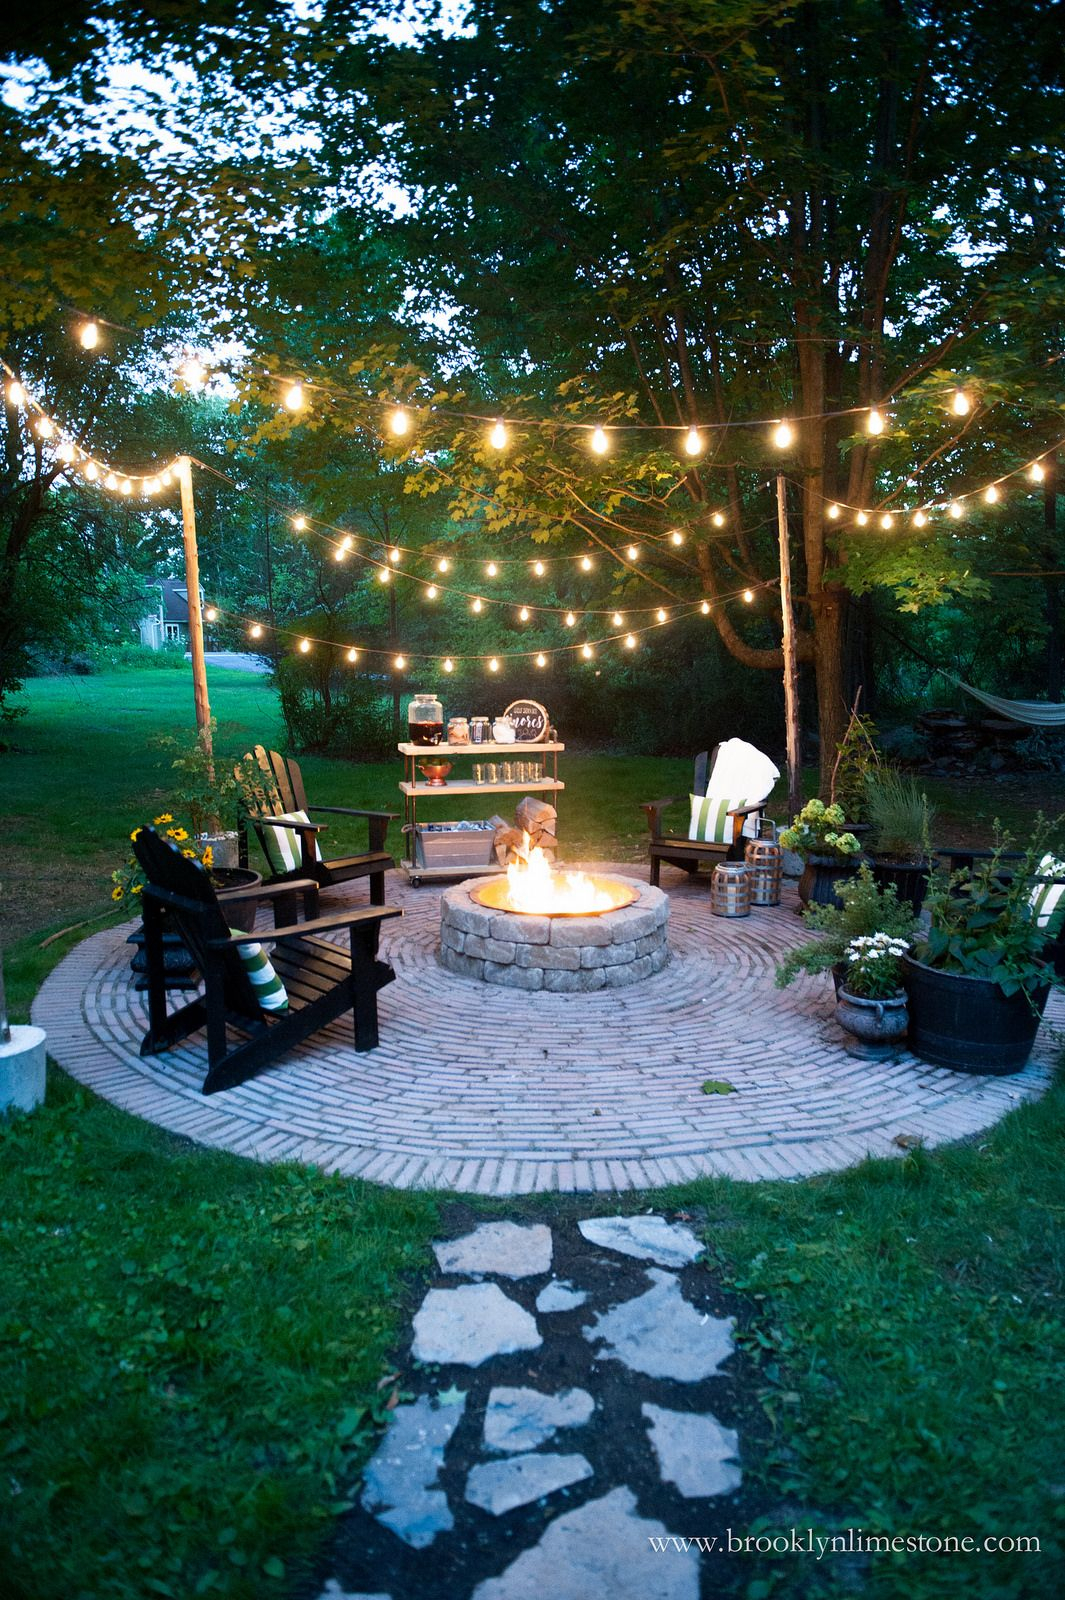 Firepit Patio Country Cottage Diy Circular Outdoor Entertaining regarding 10 Clever Designs of How to Craft Diy Backyard Fire Pit Ideas